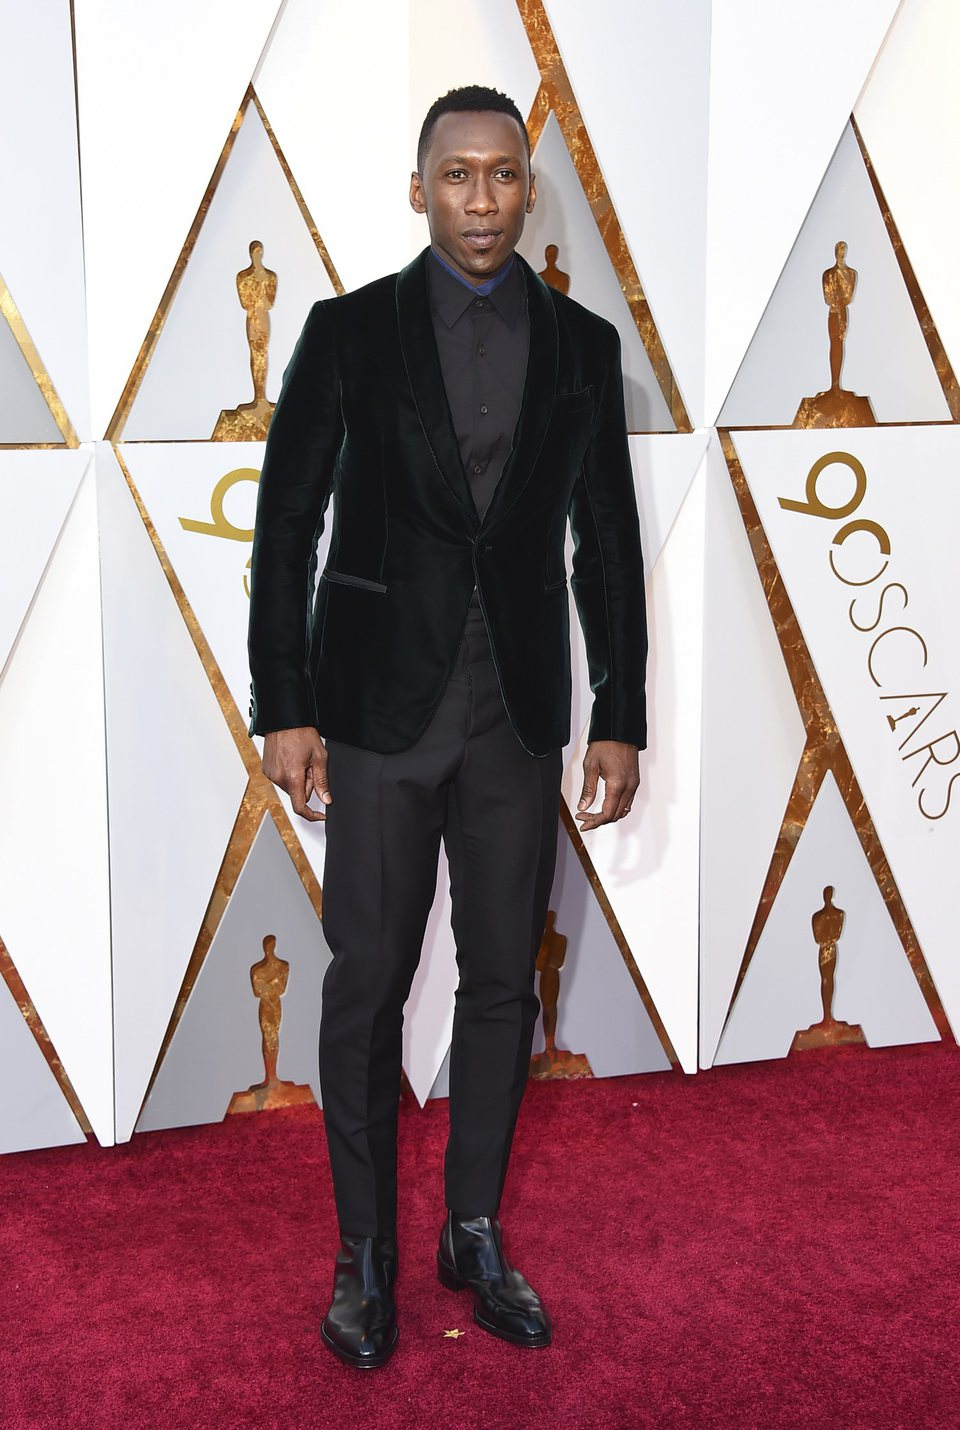 Mahershala Ali at the Oscar 2018 red carpet